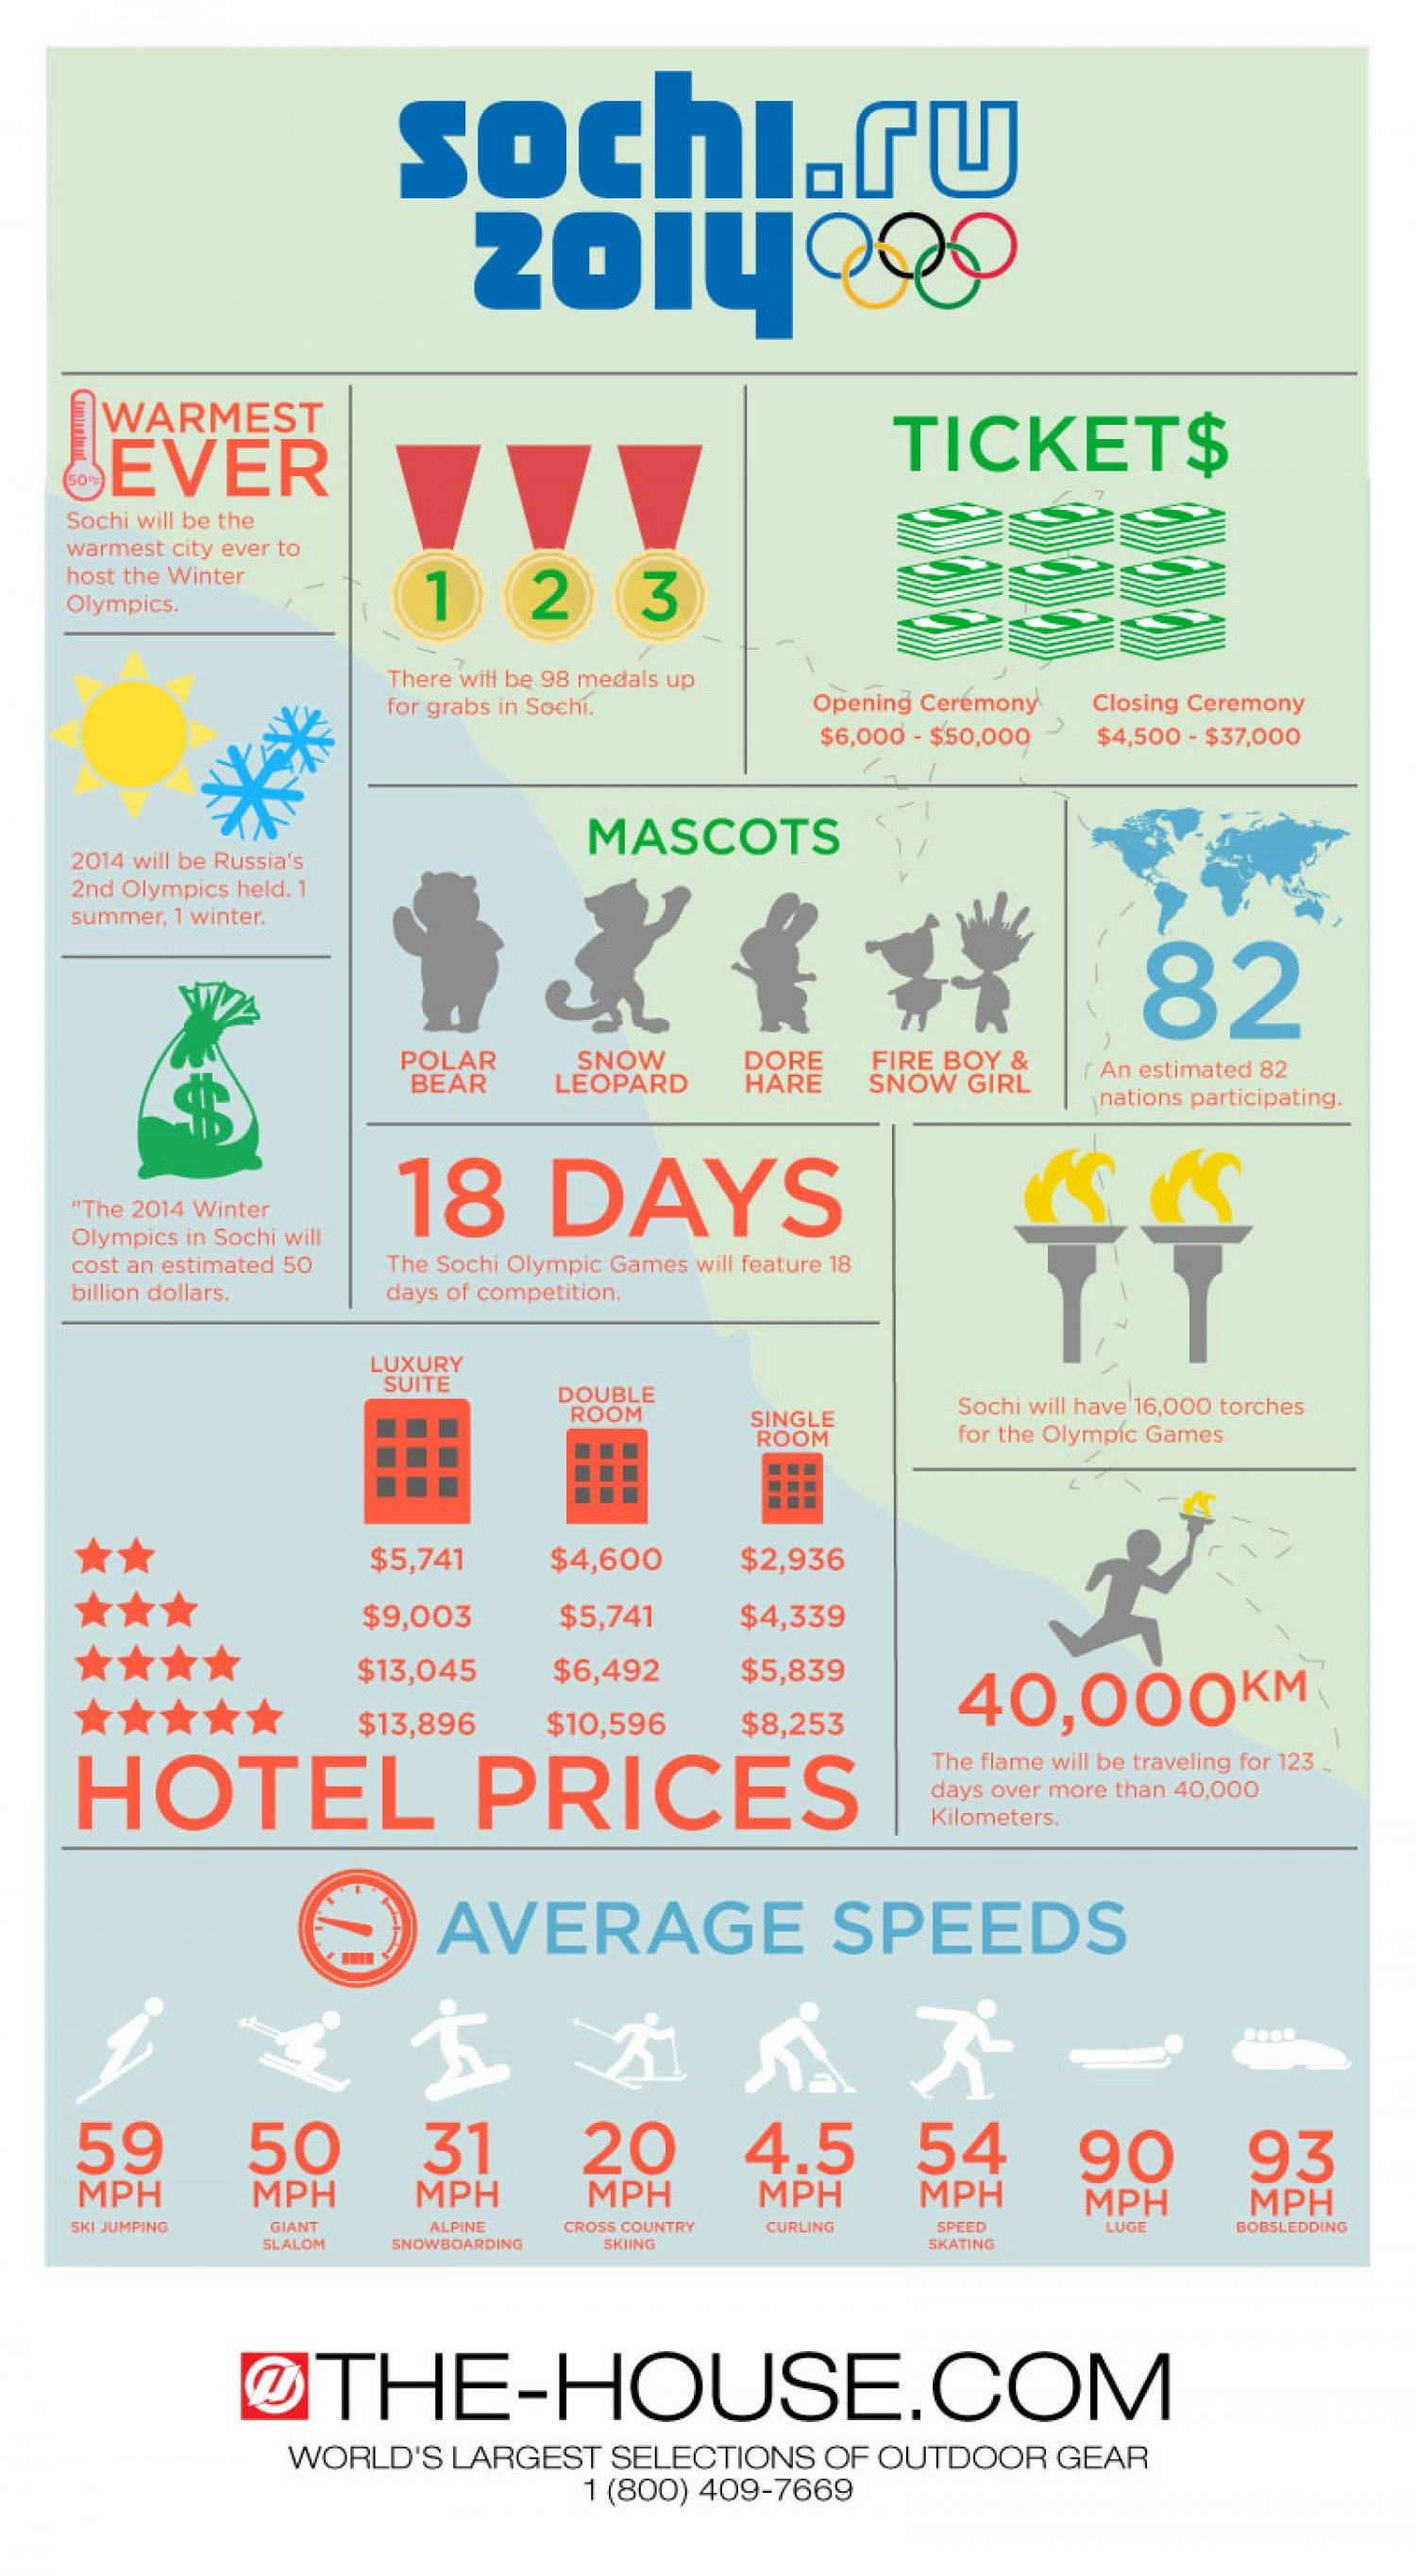 Infographic Facts and Statistics about the 2014 Sochi